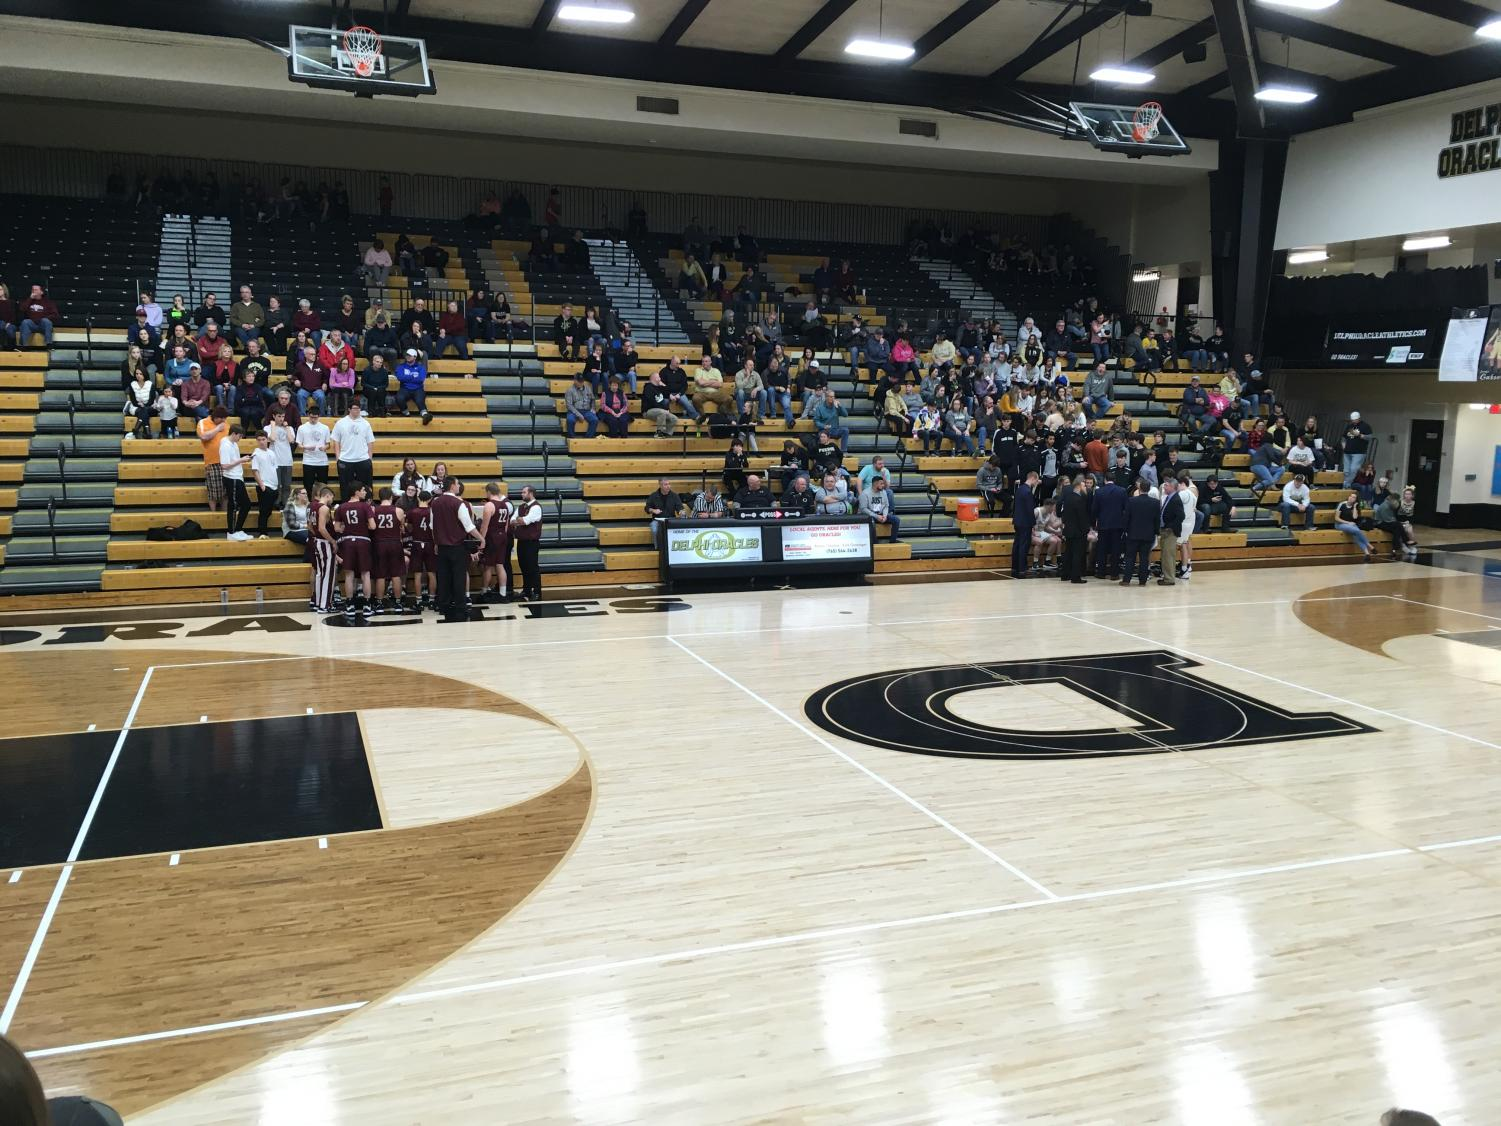 Delphi and Winamac teams huddle together during a timeout to develop strategies for the last few minutes of play.